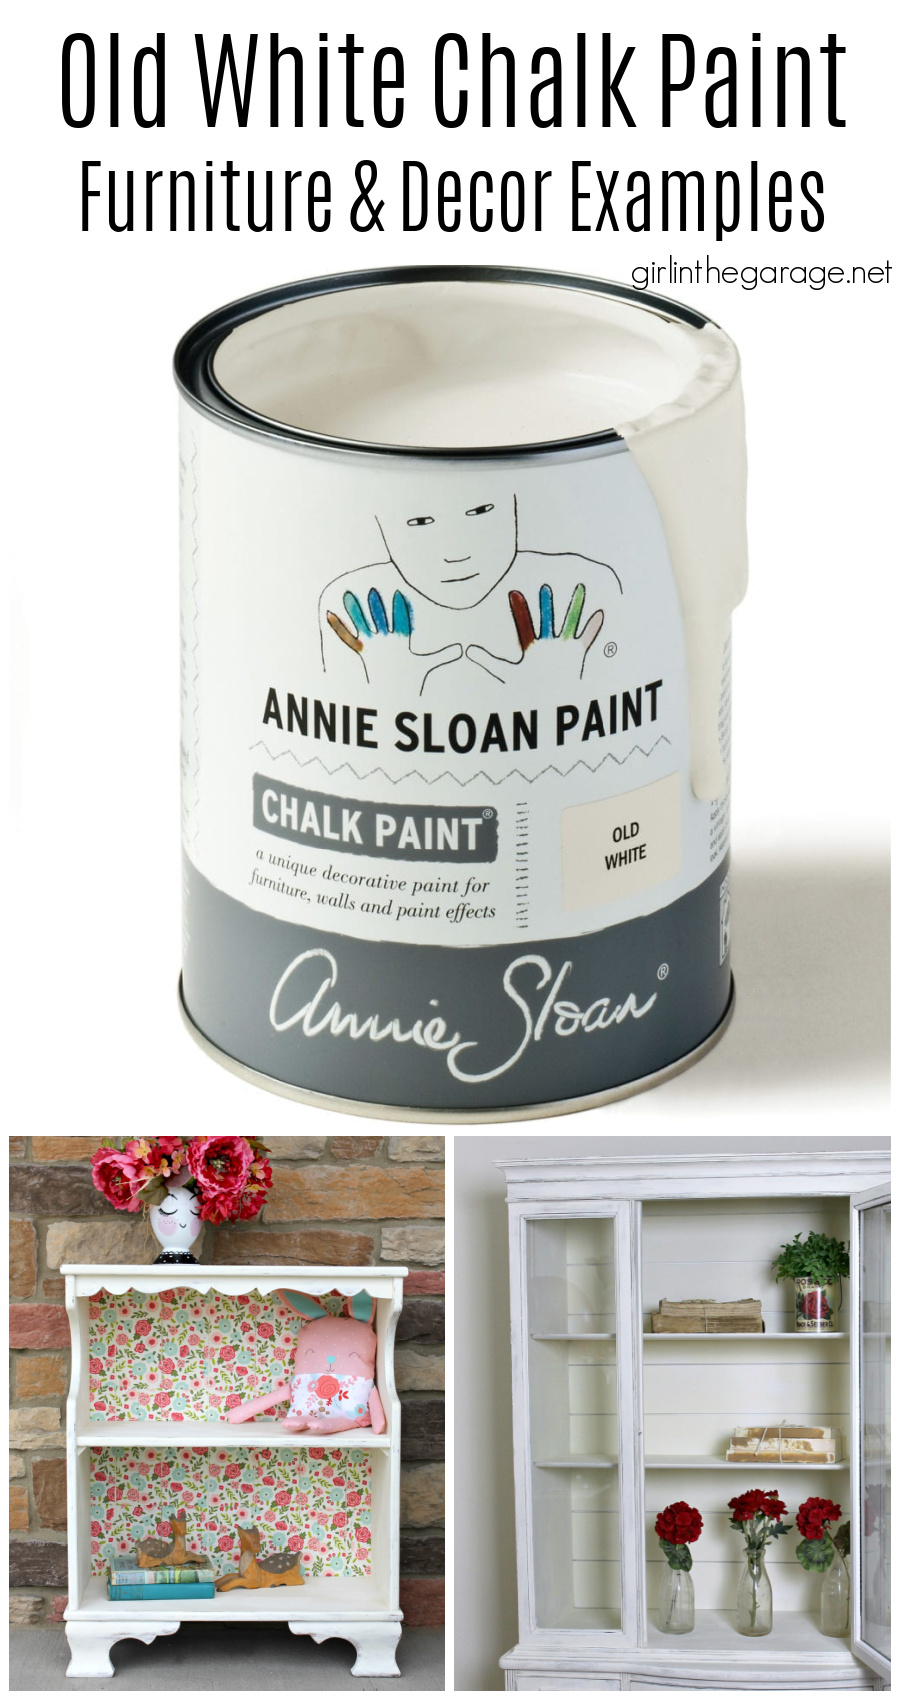 Beautiful painted furniture ideas in Old White Chalk Paint by Annie Sloan. Dressers, vanities, bookcases, cabinets, and more. By Girl in the Garage